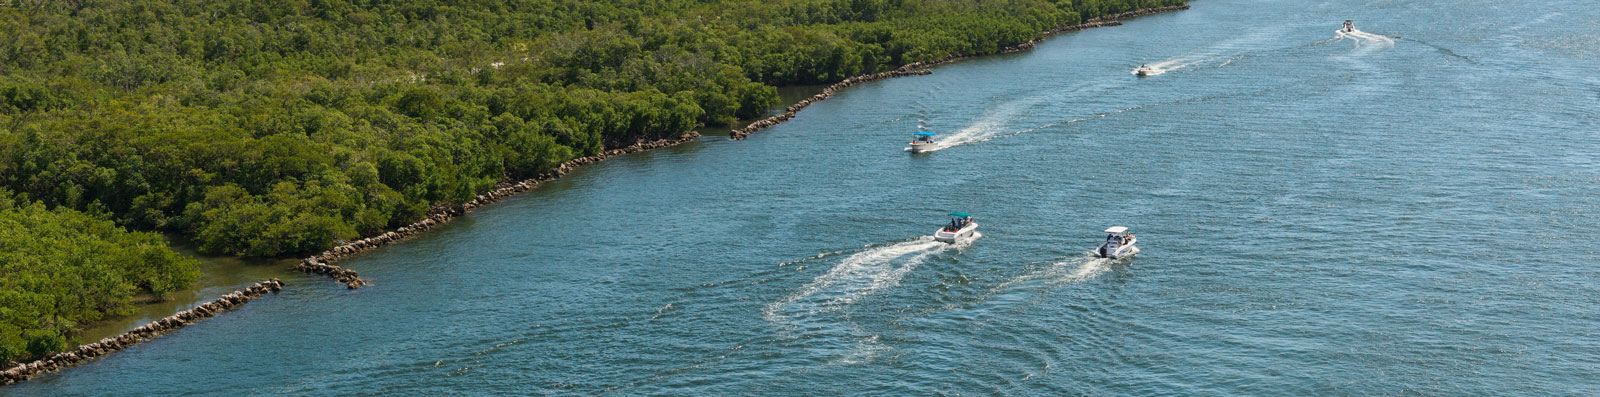 Navigating the ICW   Annapolis Powerboat Show 2019   Snag-A-Slip